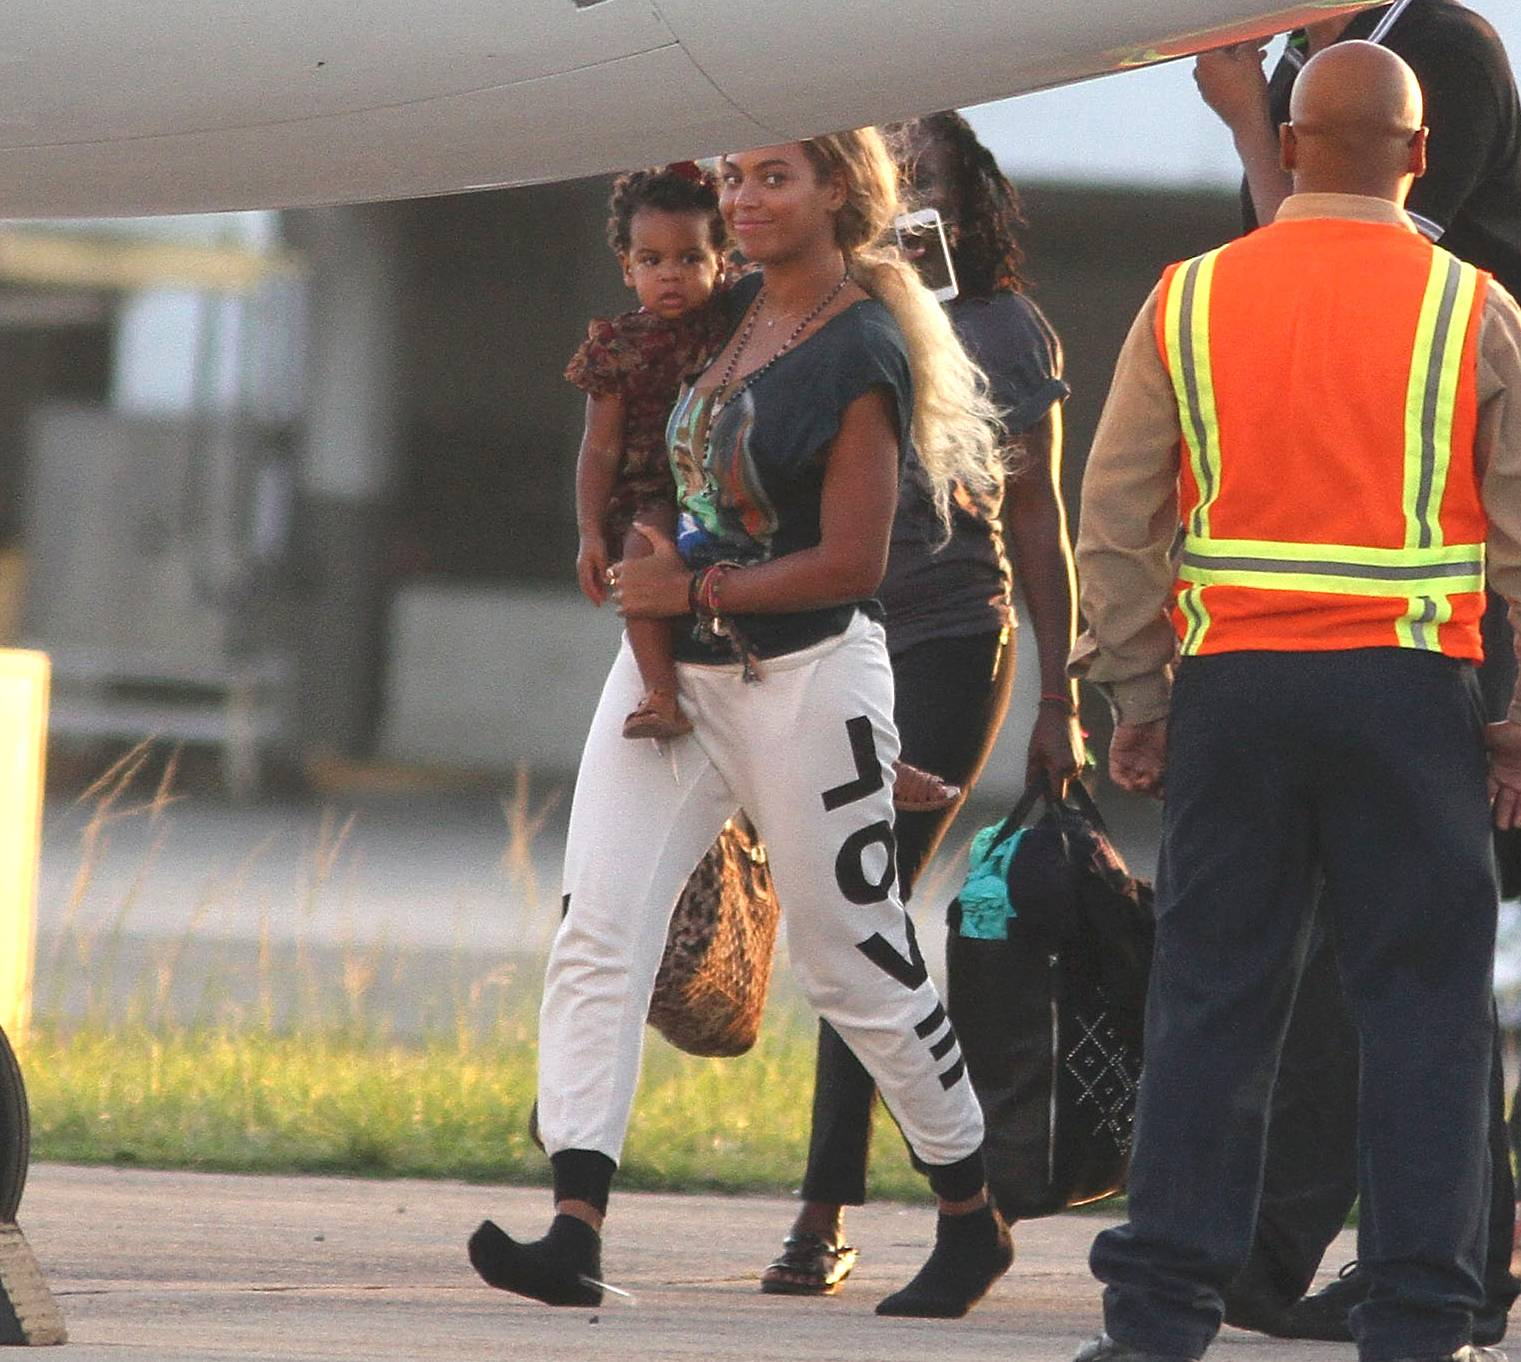 World Travel - After a stint in Brazil, Beyonce headed to Puerto Rico with baby girl Blue Ivy in her arms. Bey's hair is back and Blue Ivy is racking up stamps on her passport before adulthood. That's the life!(Photo: GV Cruz/WireImage)